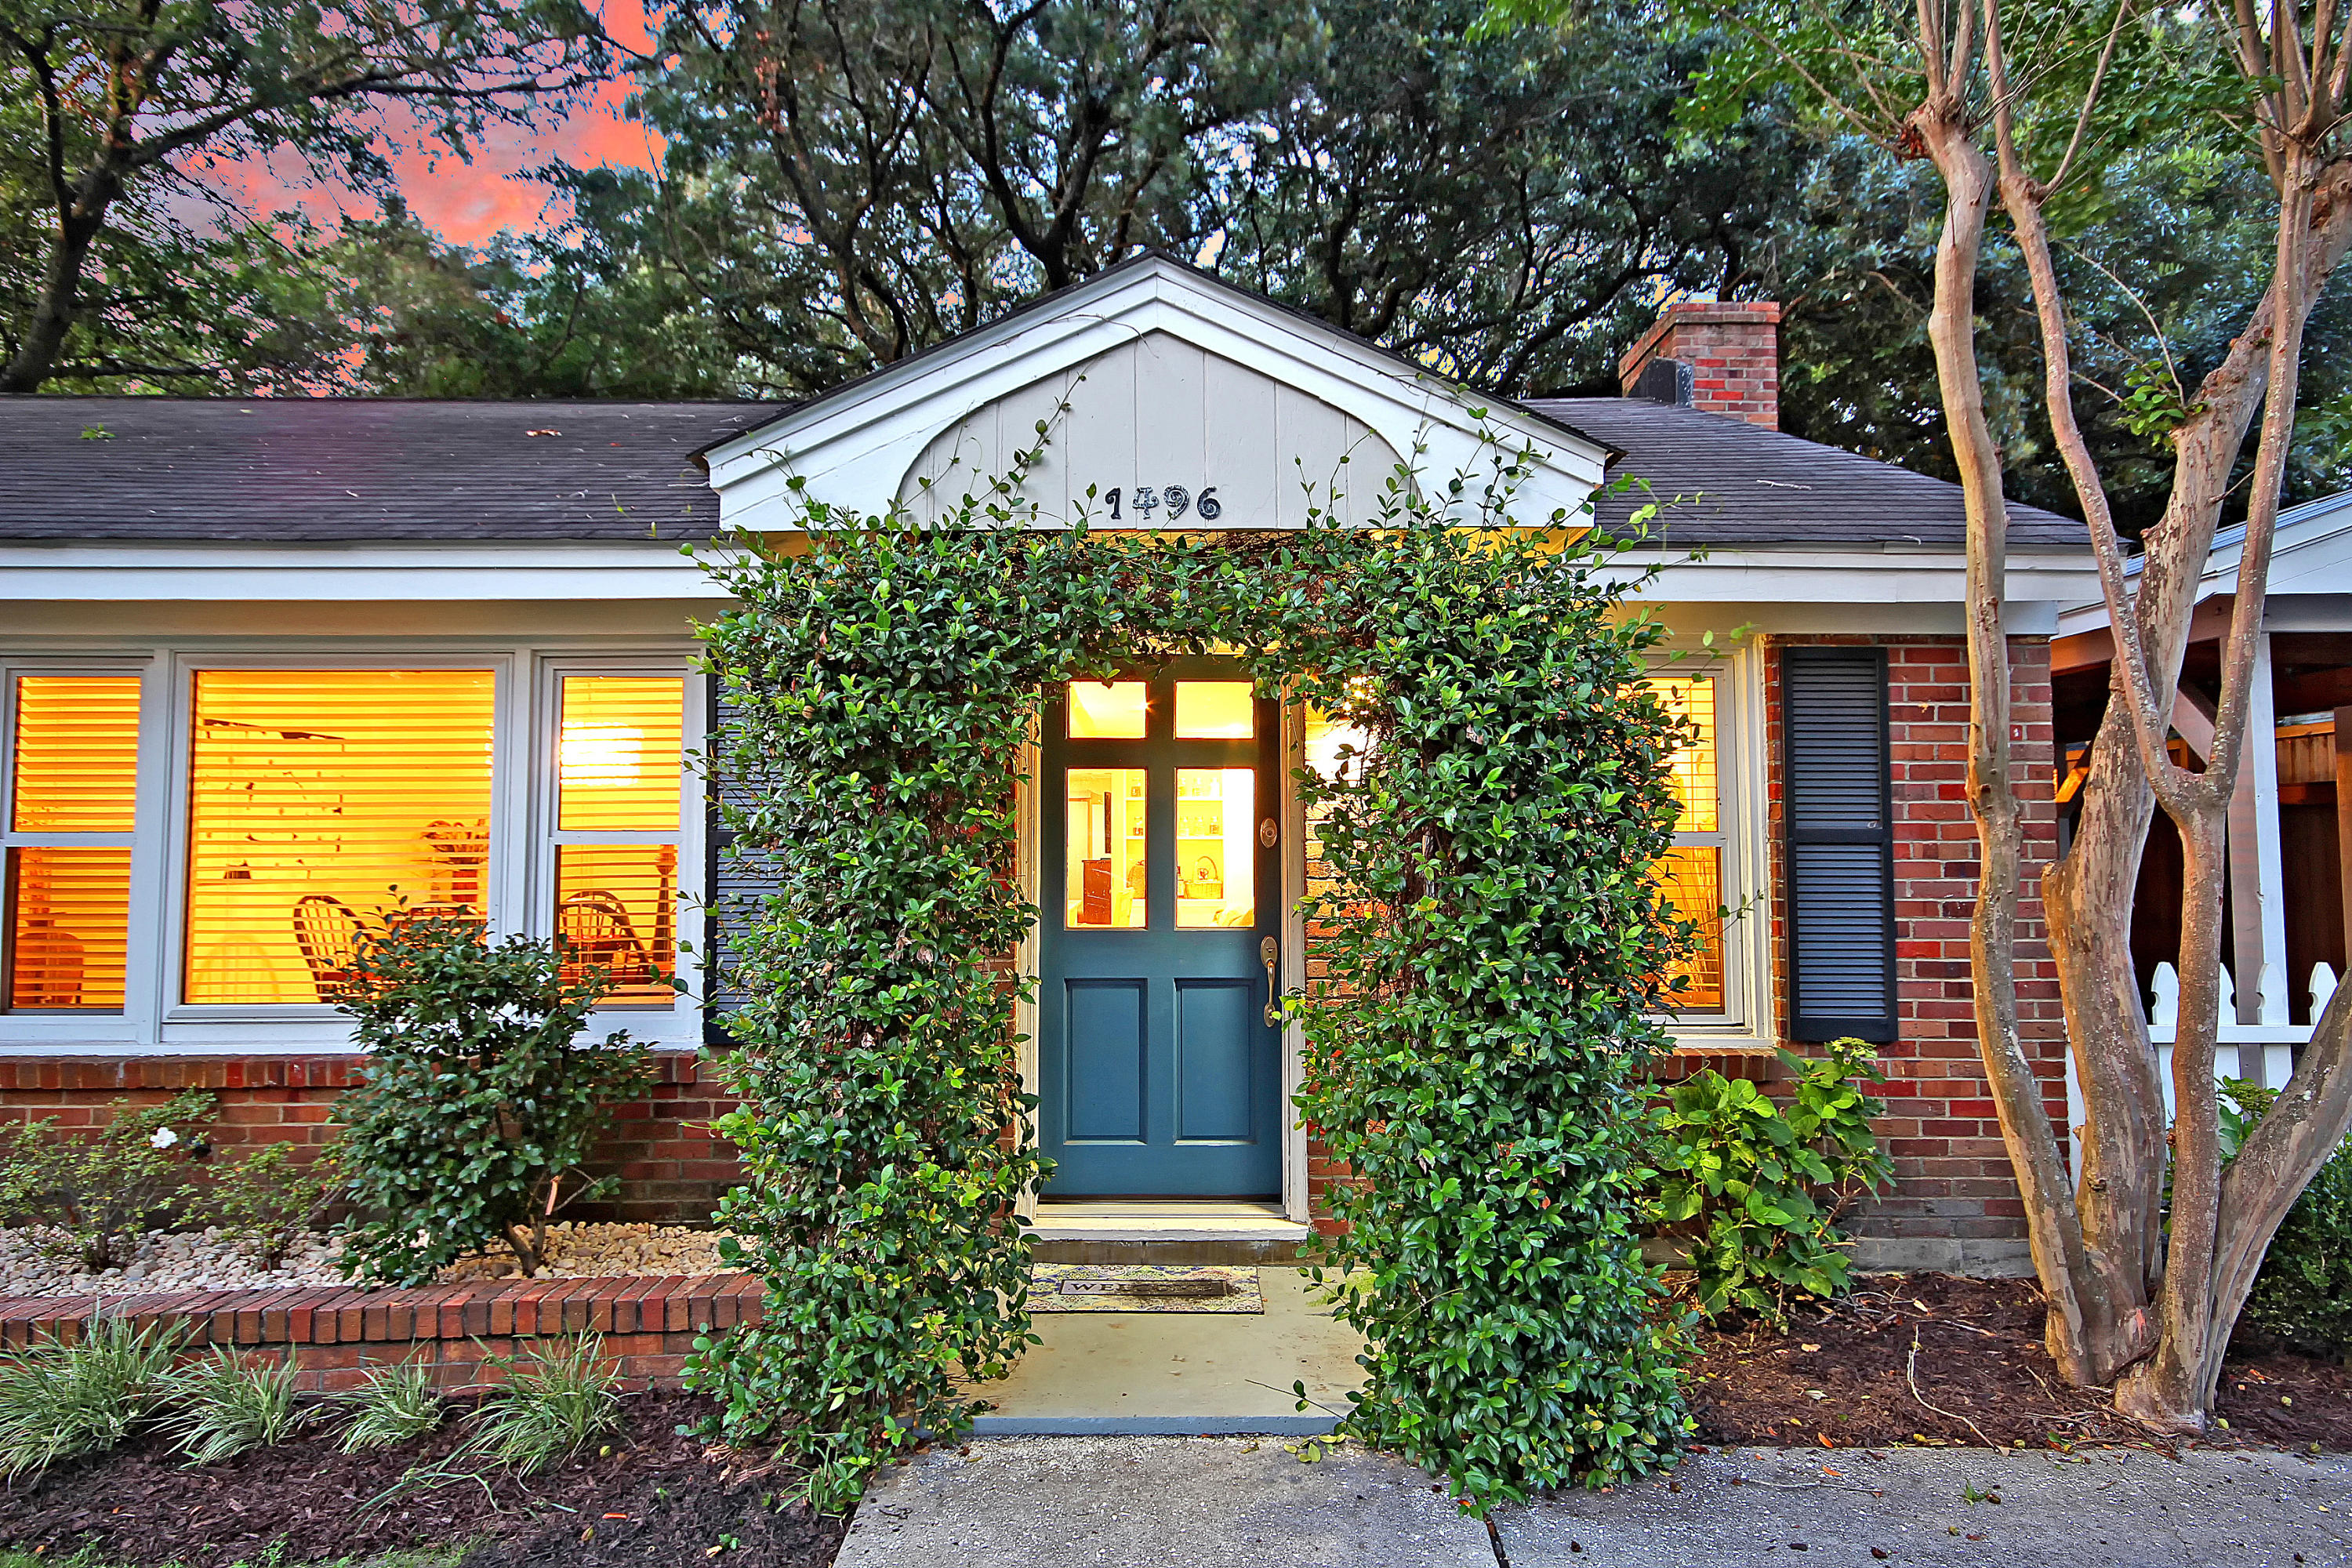 Old Mt Pleasant Homes For Sale - 1496 Indian, Mount Pleasant, SC - 0